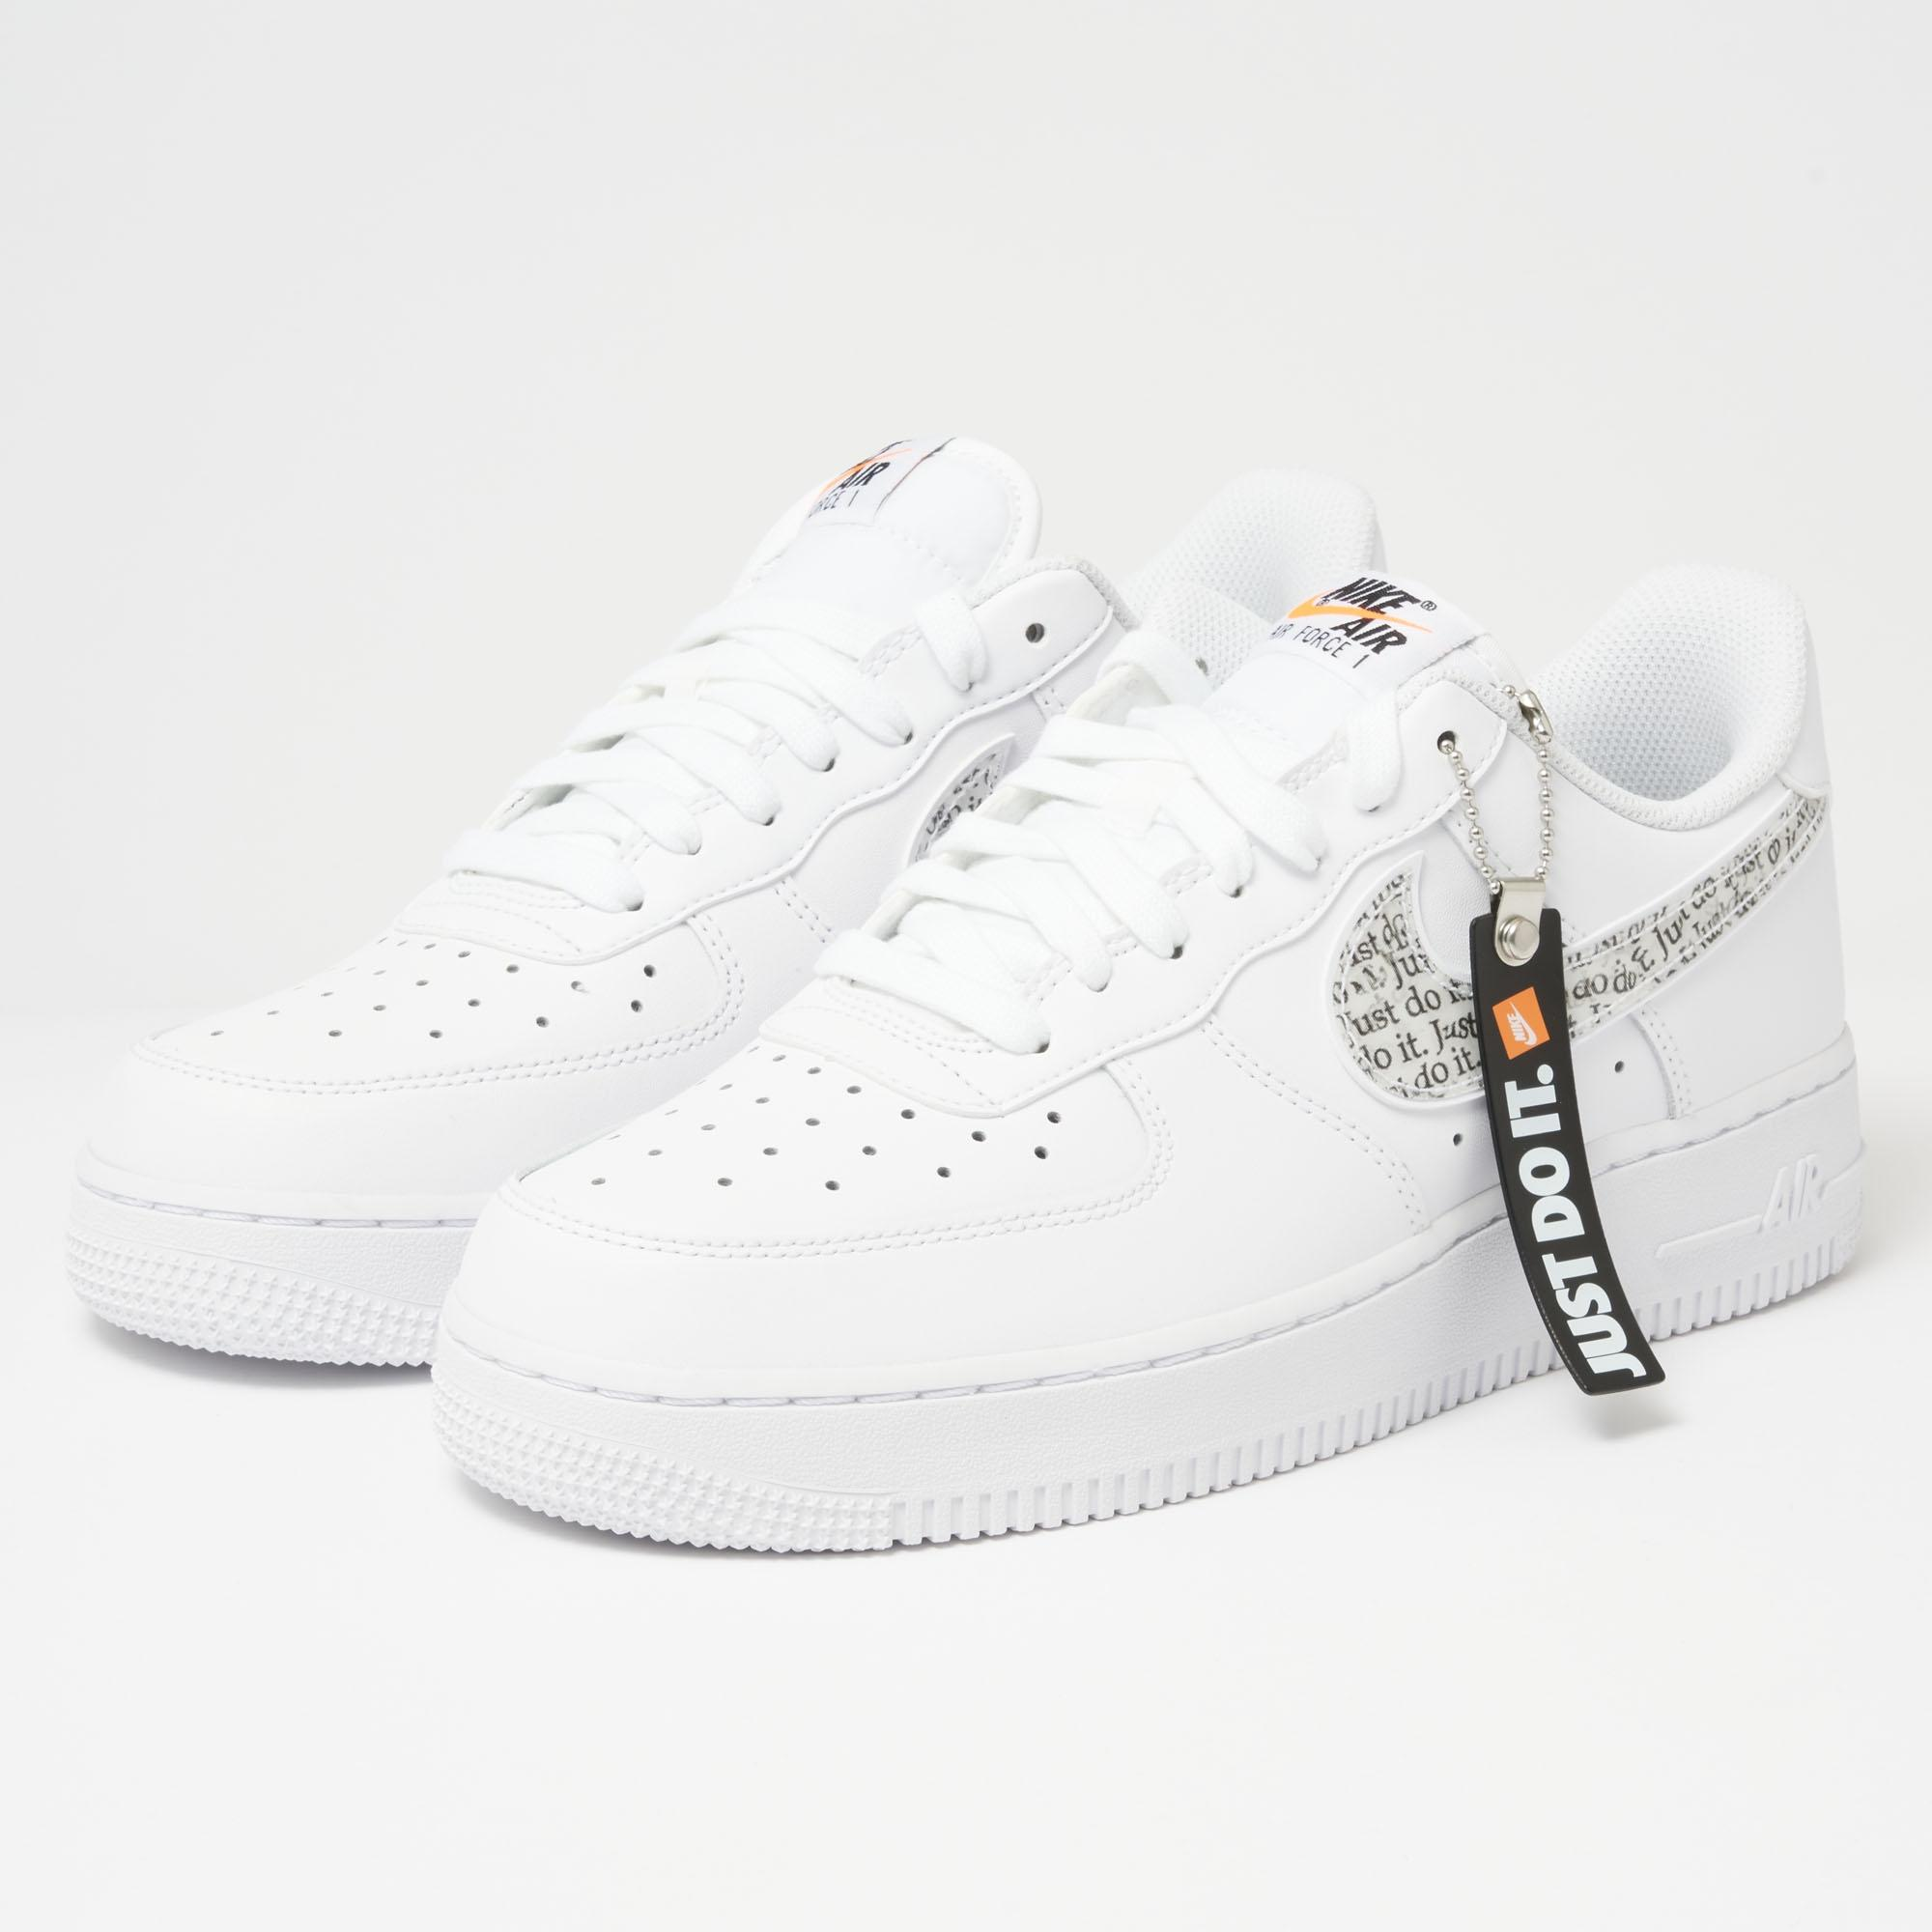 online retailer c8198 42471 Nike Air Force 1  07 Lv8  just Do It  Lntc - White, Black,total ...